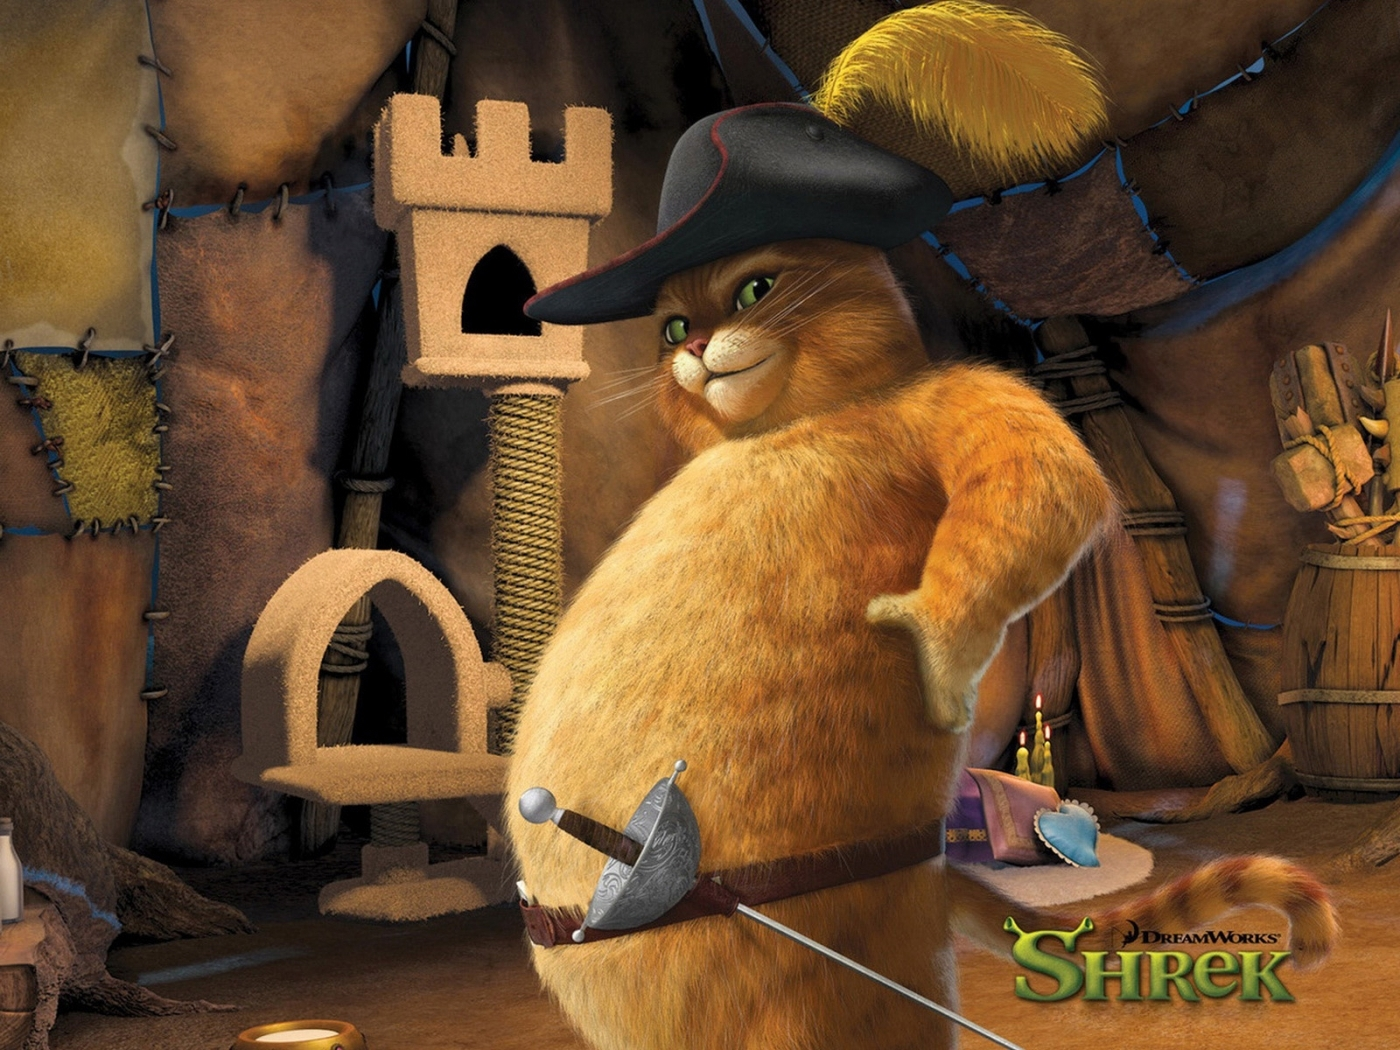 29170 download wallpaper Cartoon, Shrek screensavers and pictures for free